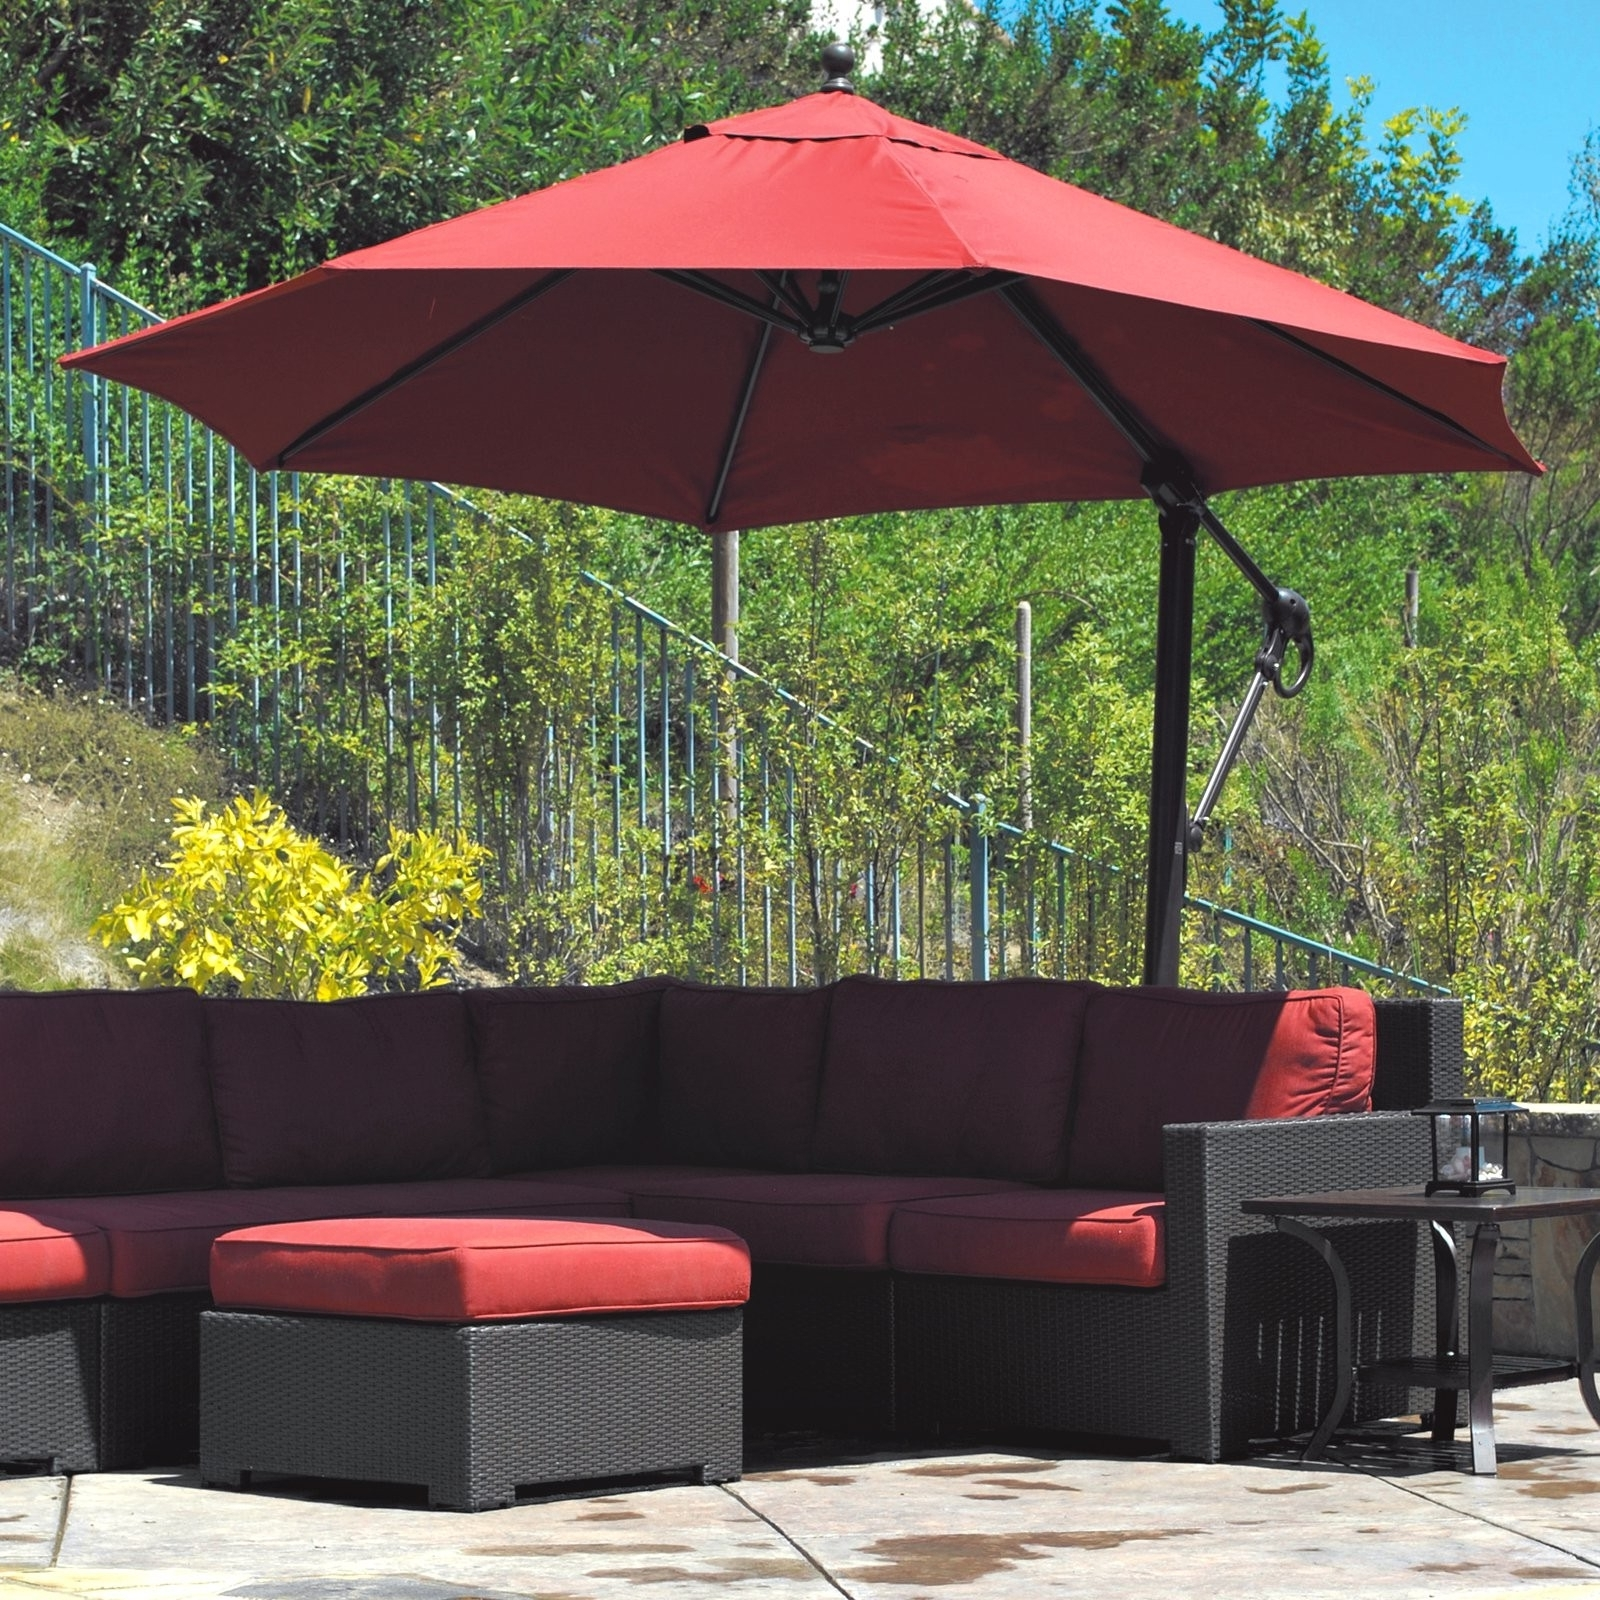 Latest Red Sunbrella Patio Umbrellas Pertaining To Sunbrella Patio Umbrella Lovely Outdoor Ft Patio Umbrella Outdoor (View 5 of 20)